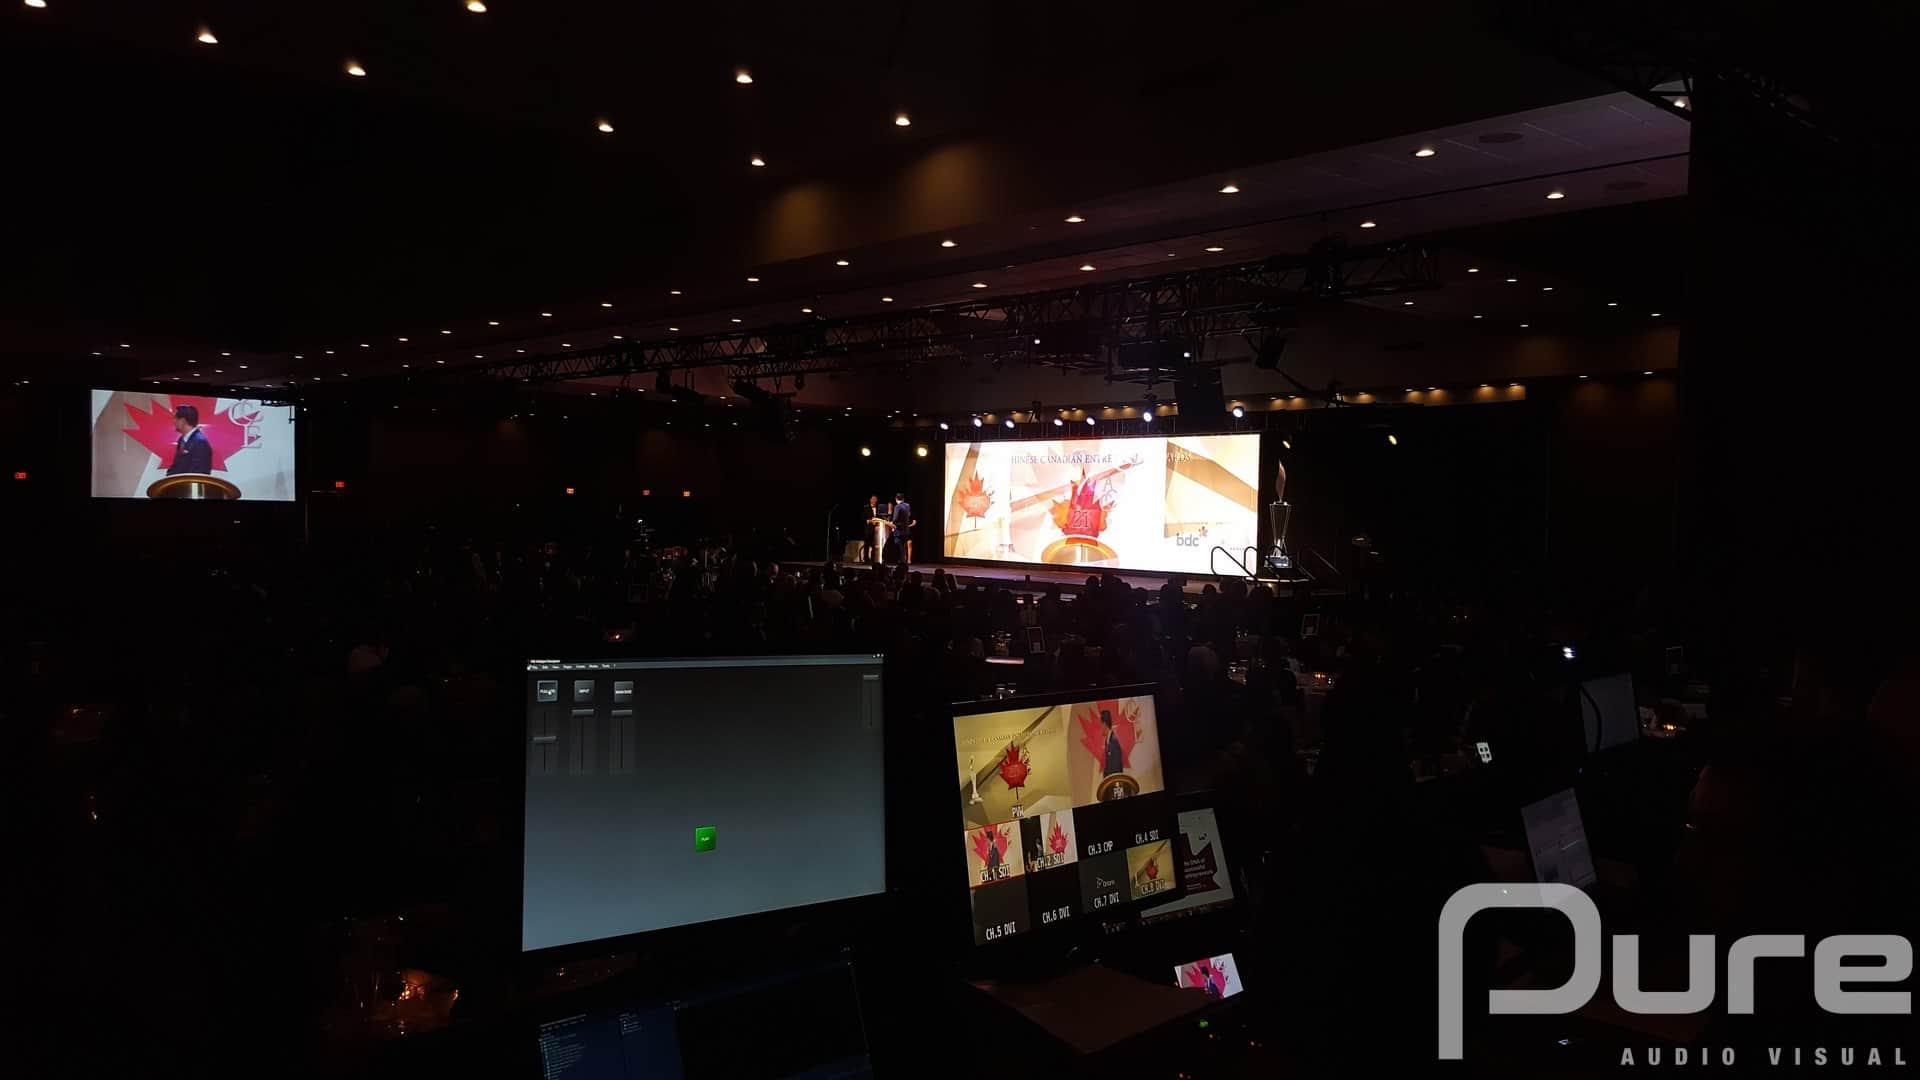 An audio visual production for an awards gala with LED video wall, projectors, screens, stage, lekos, line array, and washlights